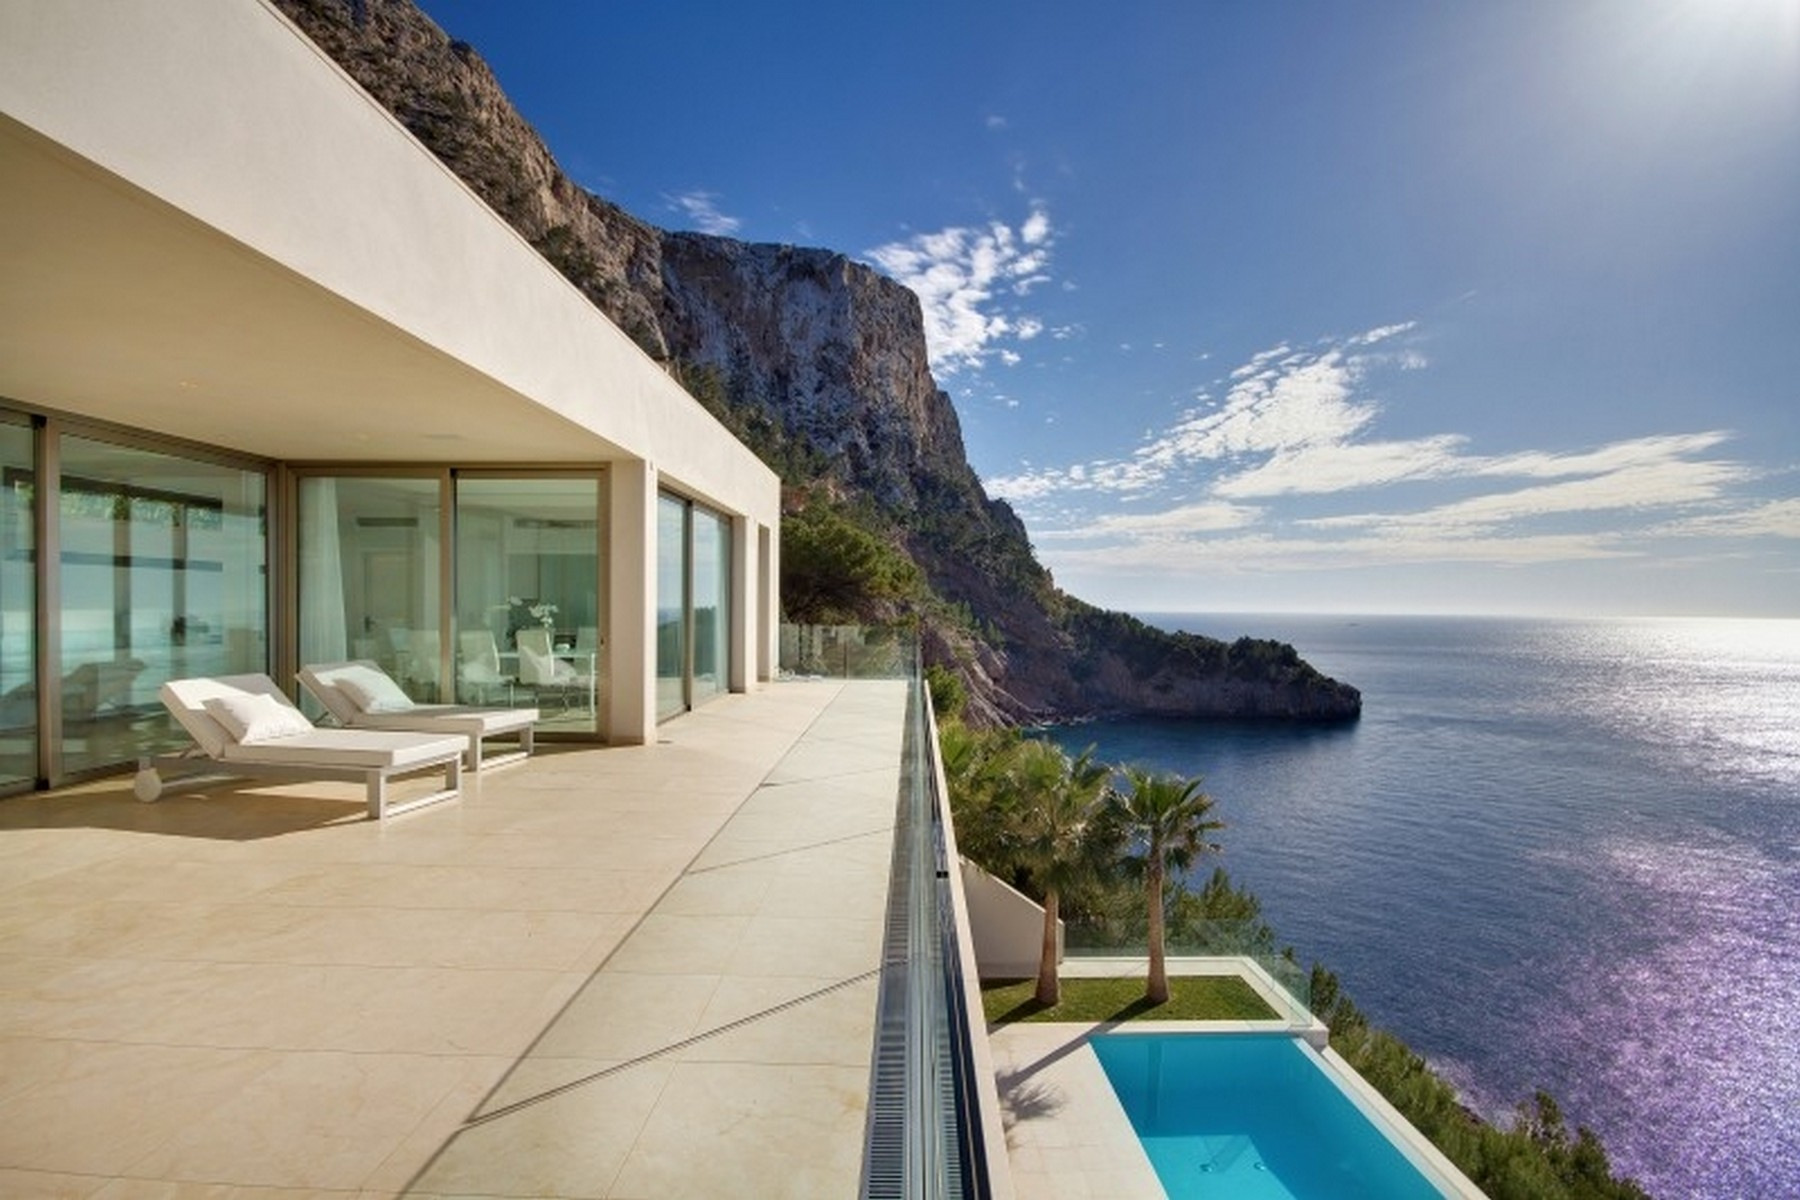 Moradia para Venda às Modern Villa with sea access in Port Andratx Port Andratx, Palma De Maiorca, Espanha